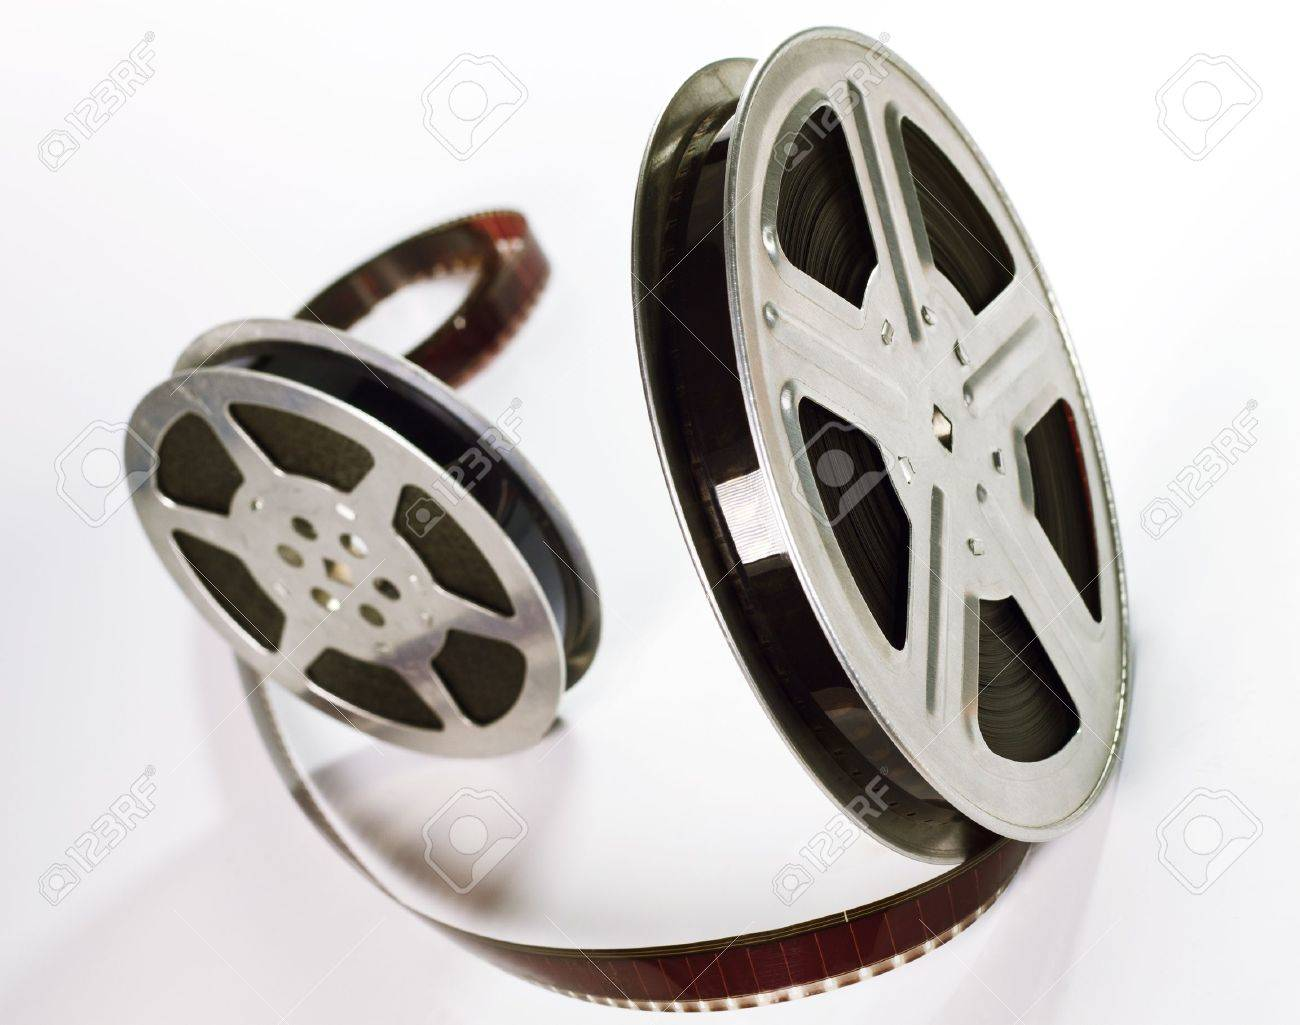 Old motion picture film reels Stock Photo - 13507525